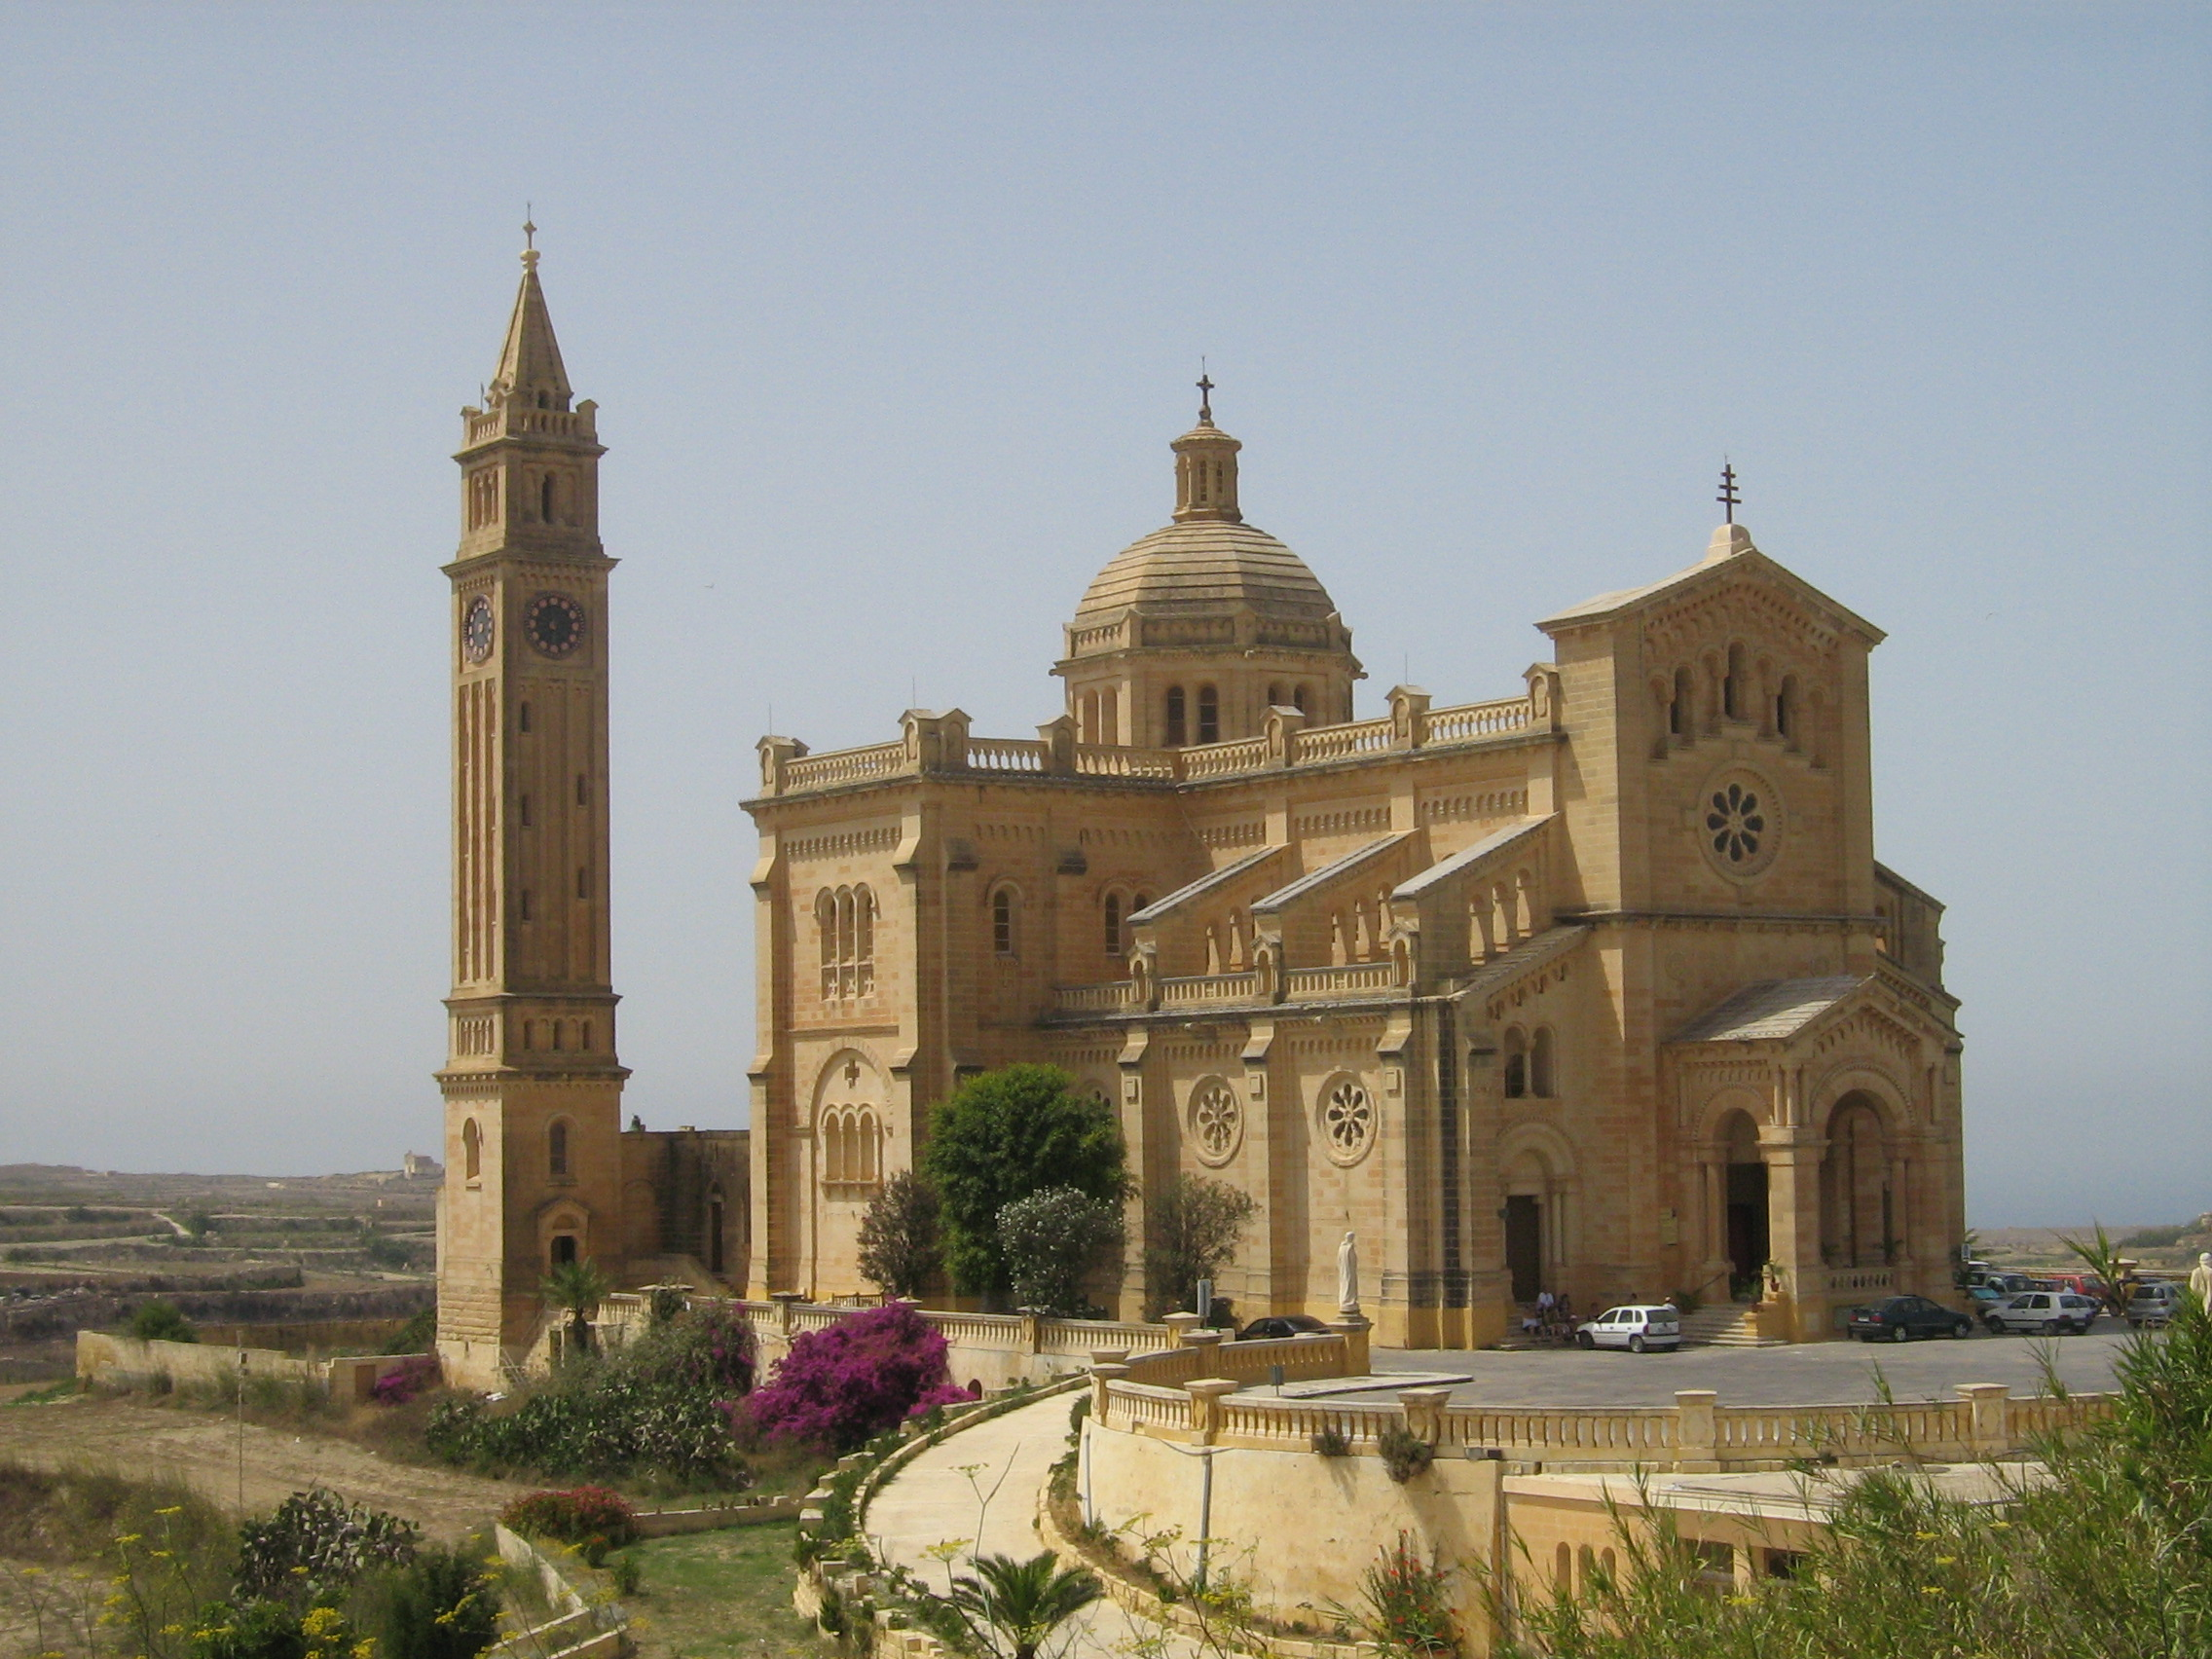 Malta Island Church